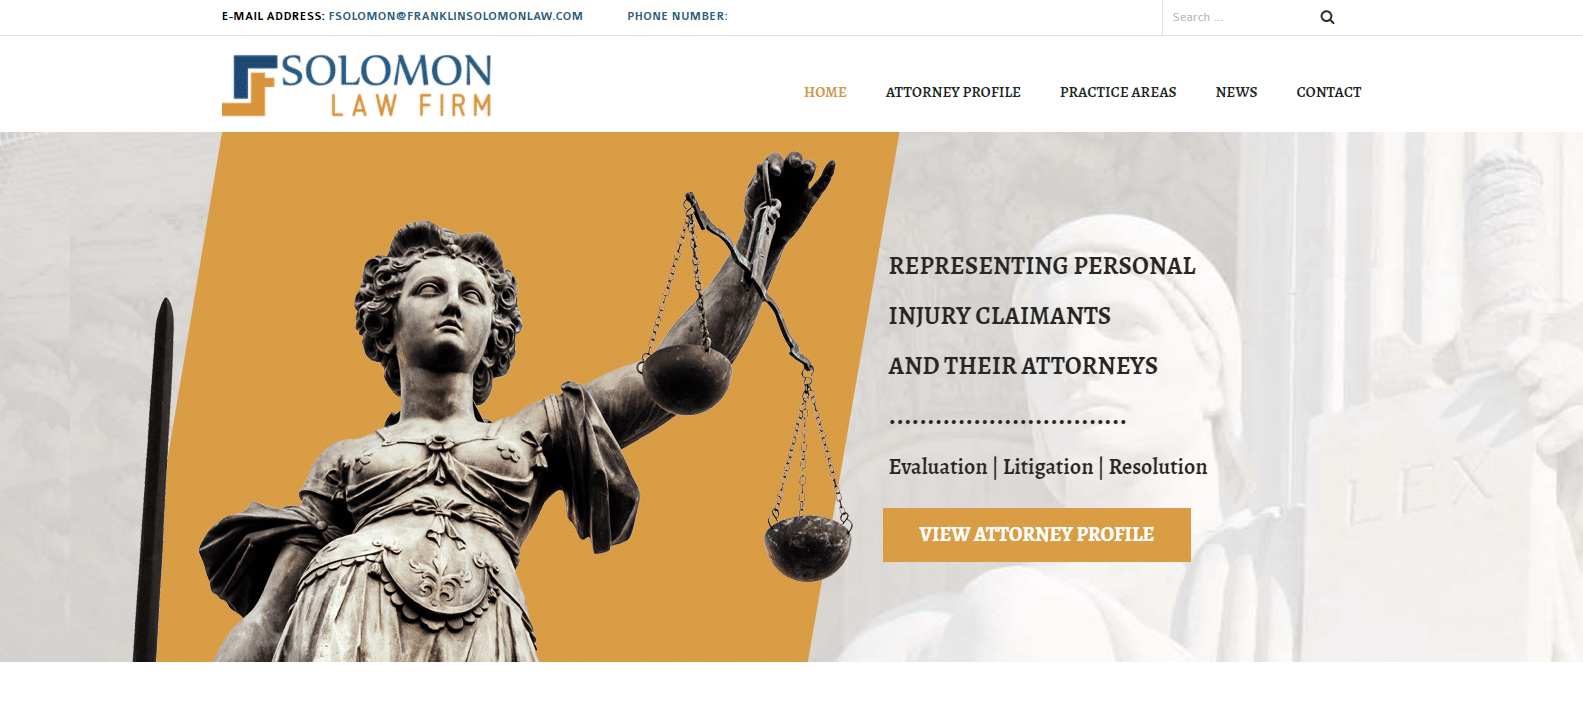 Solomon Law Firm – South Jersey Law Firm Representing Personal Injury Claimants and Their Attorneys2